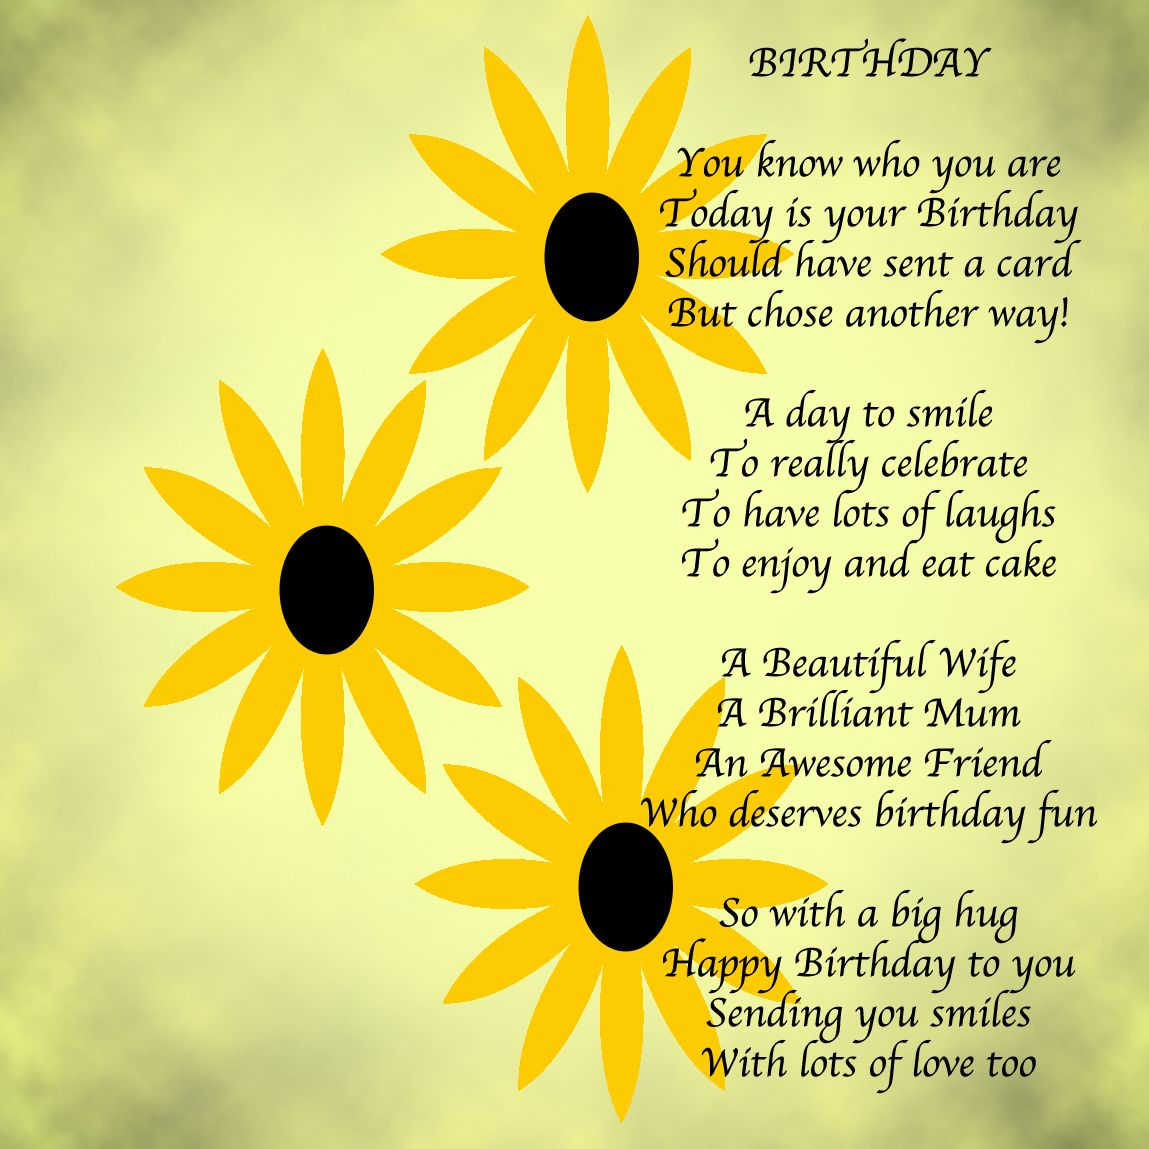 A birthday message birthday messages messages and birthday poems a birthday message bookmarktalkfo Choice Image